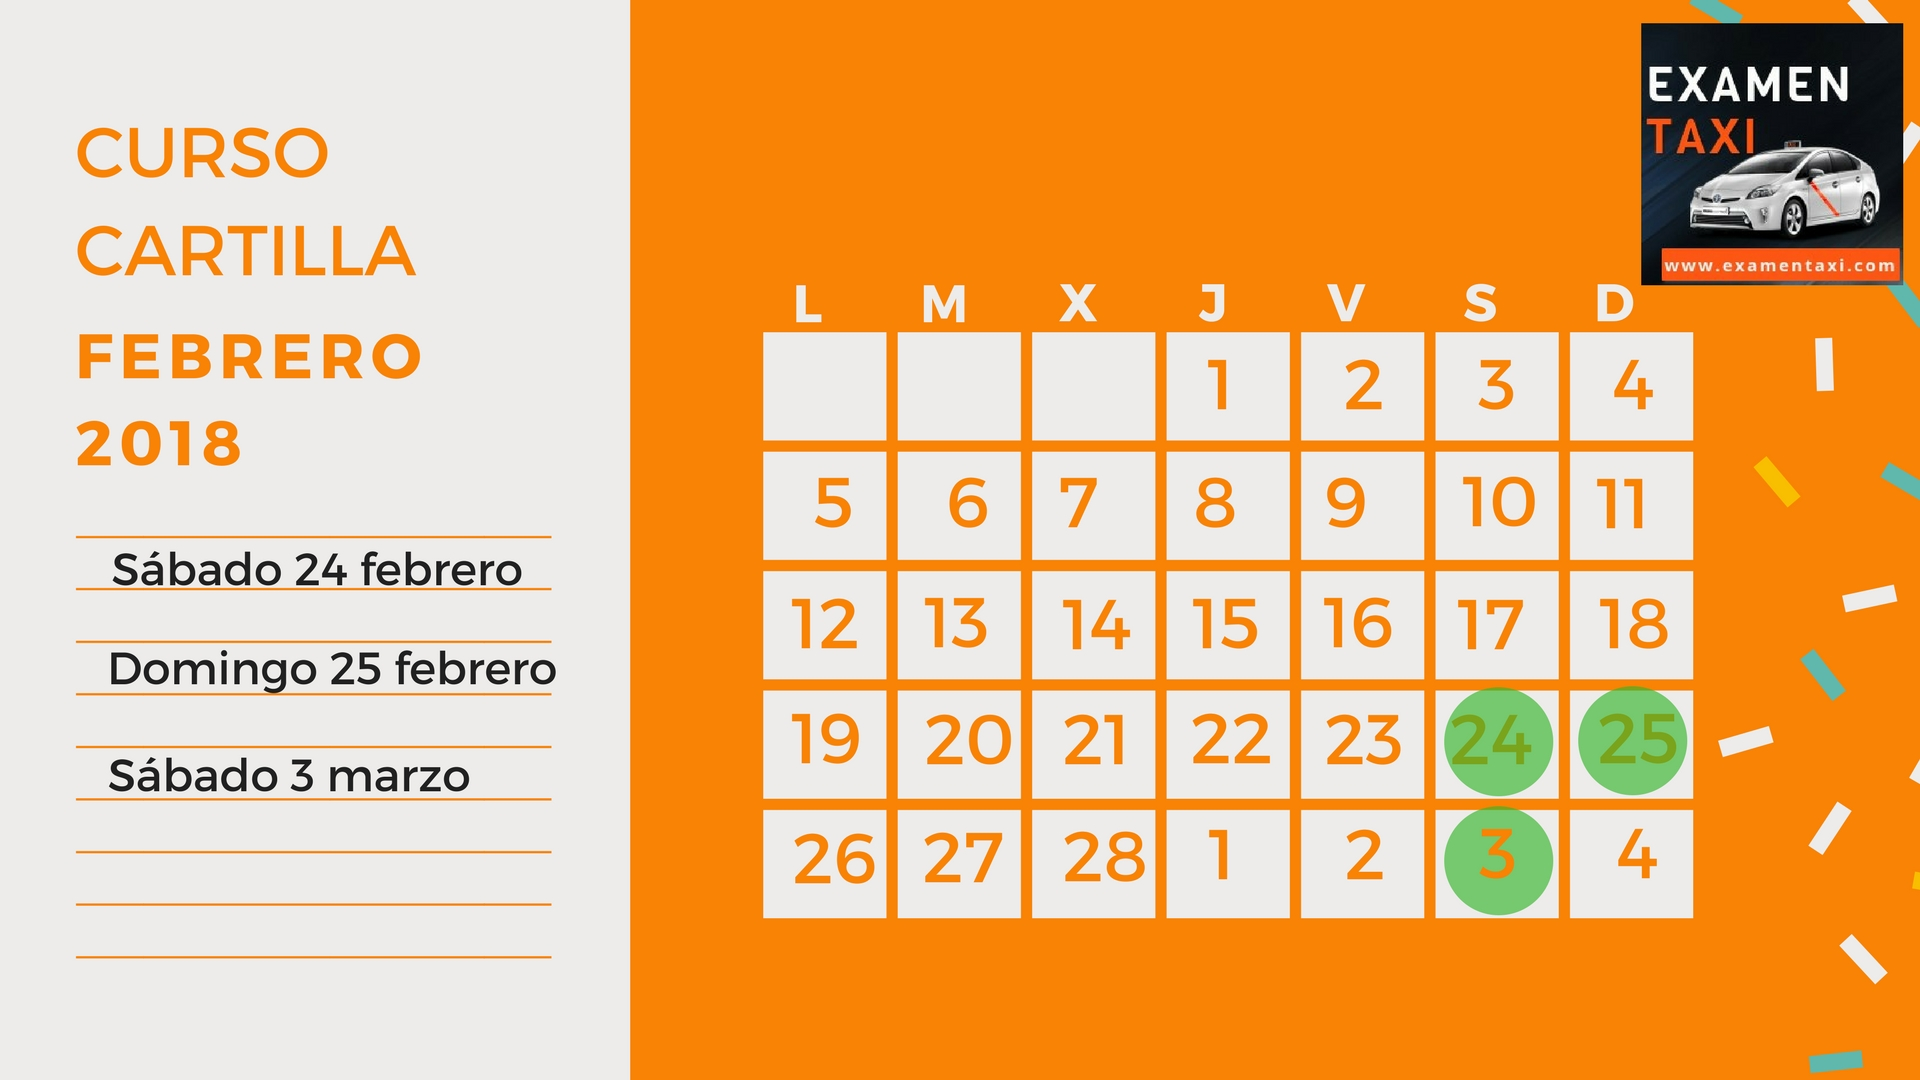 Calendario Curso Cartilla Febrero 2018